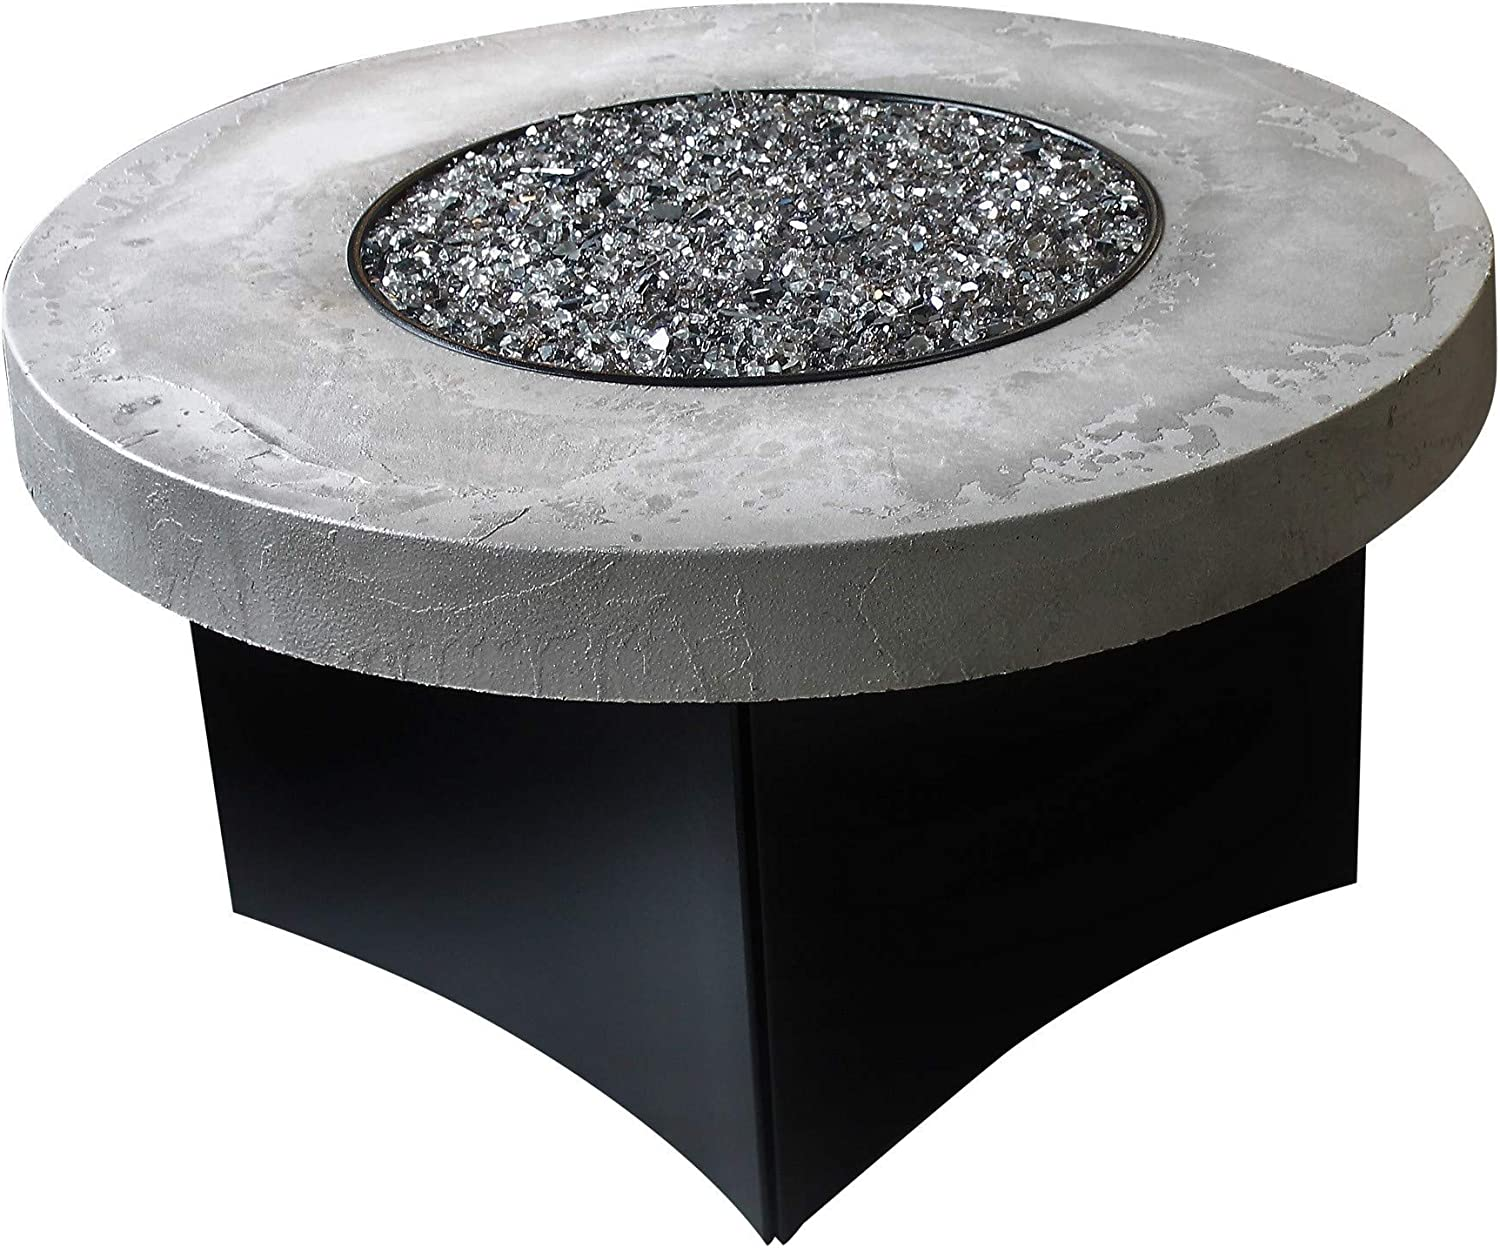 "B079XY3HS2 Oriflamme Outdoor Propane Fire Table, Greystone Elegance, 42"" Round 81rE2wiq5uL.SL1500_"